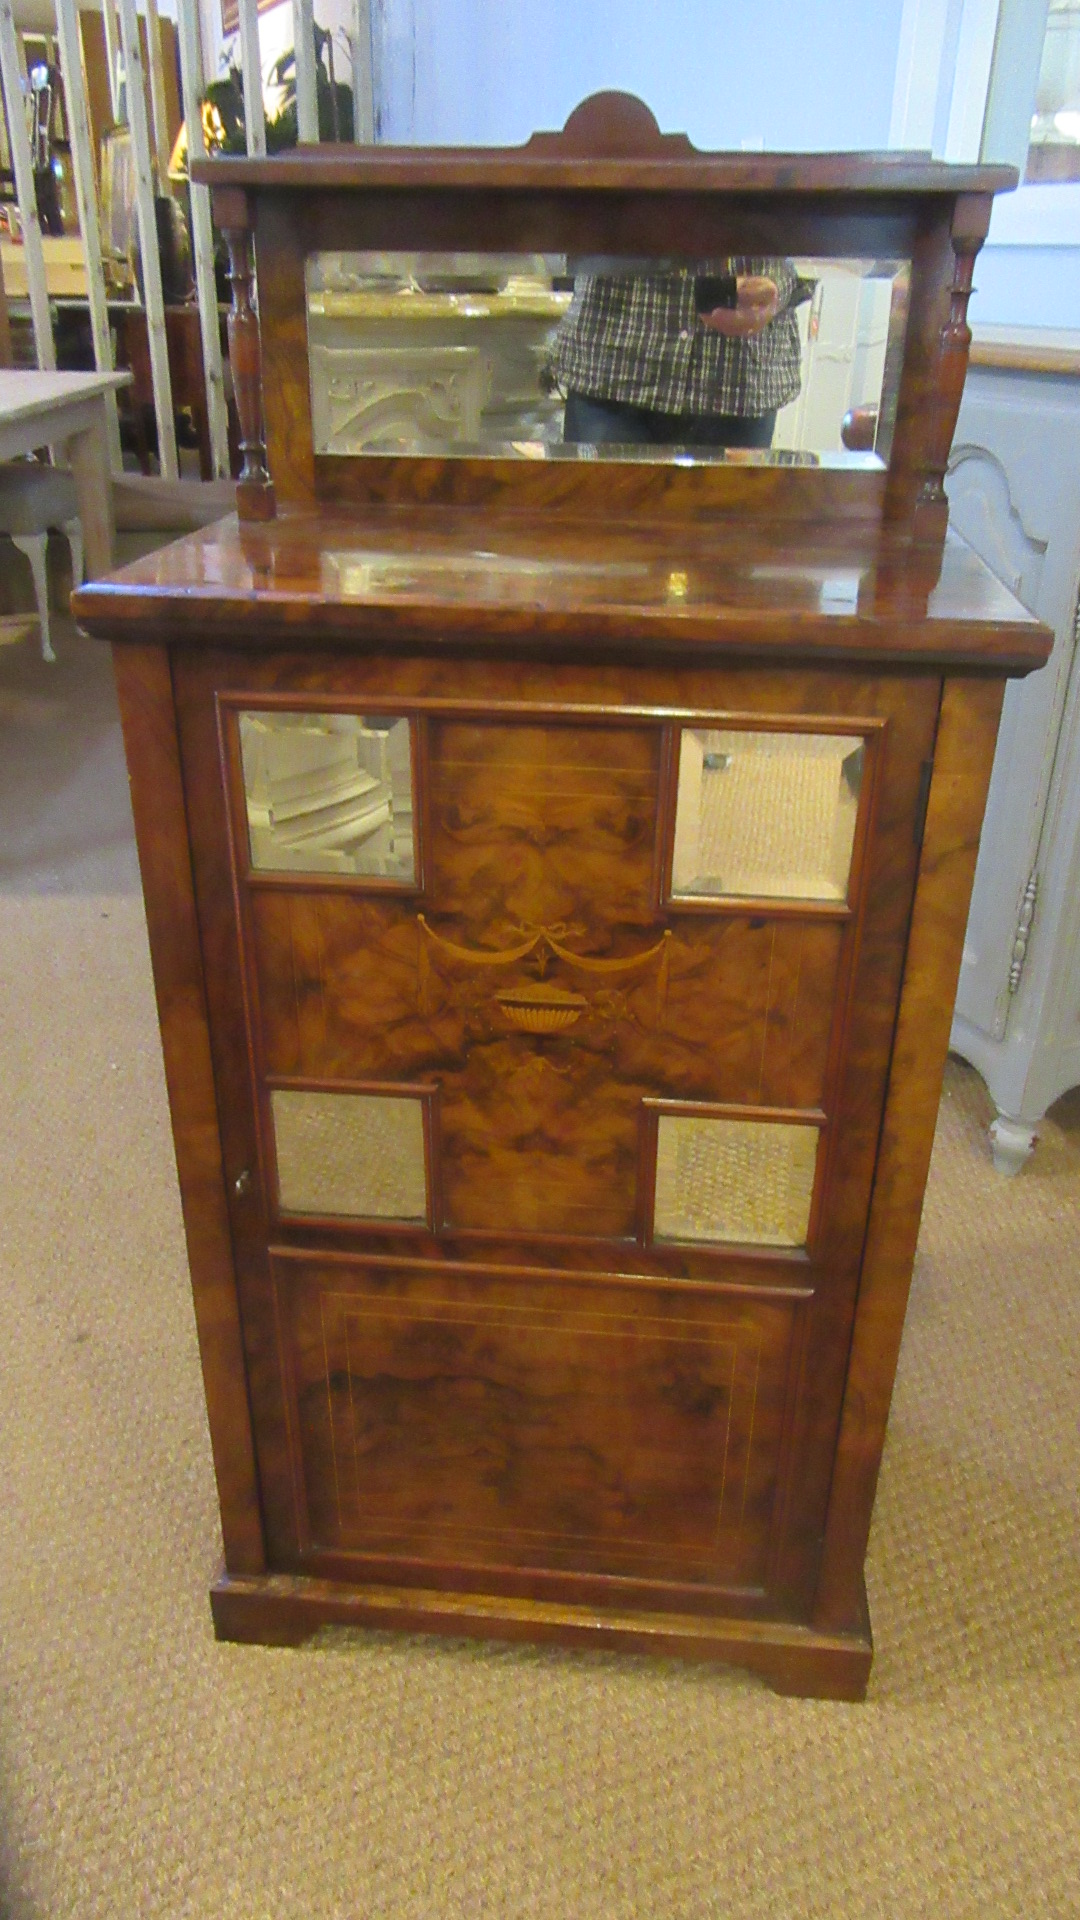 ANTIQUE VICTORIAN INLAID BURR WALNUT MIRRORED CABINET